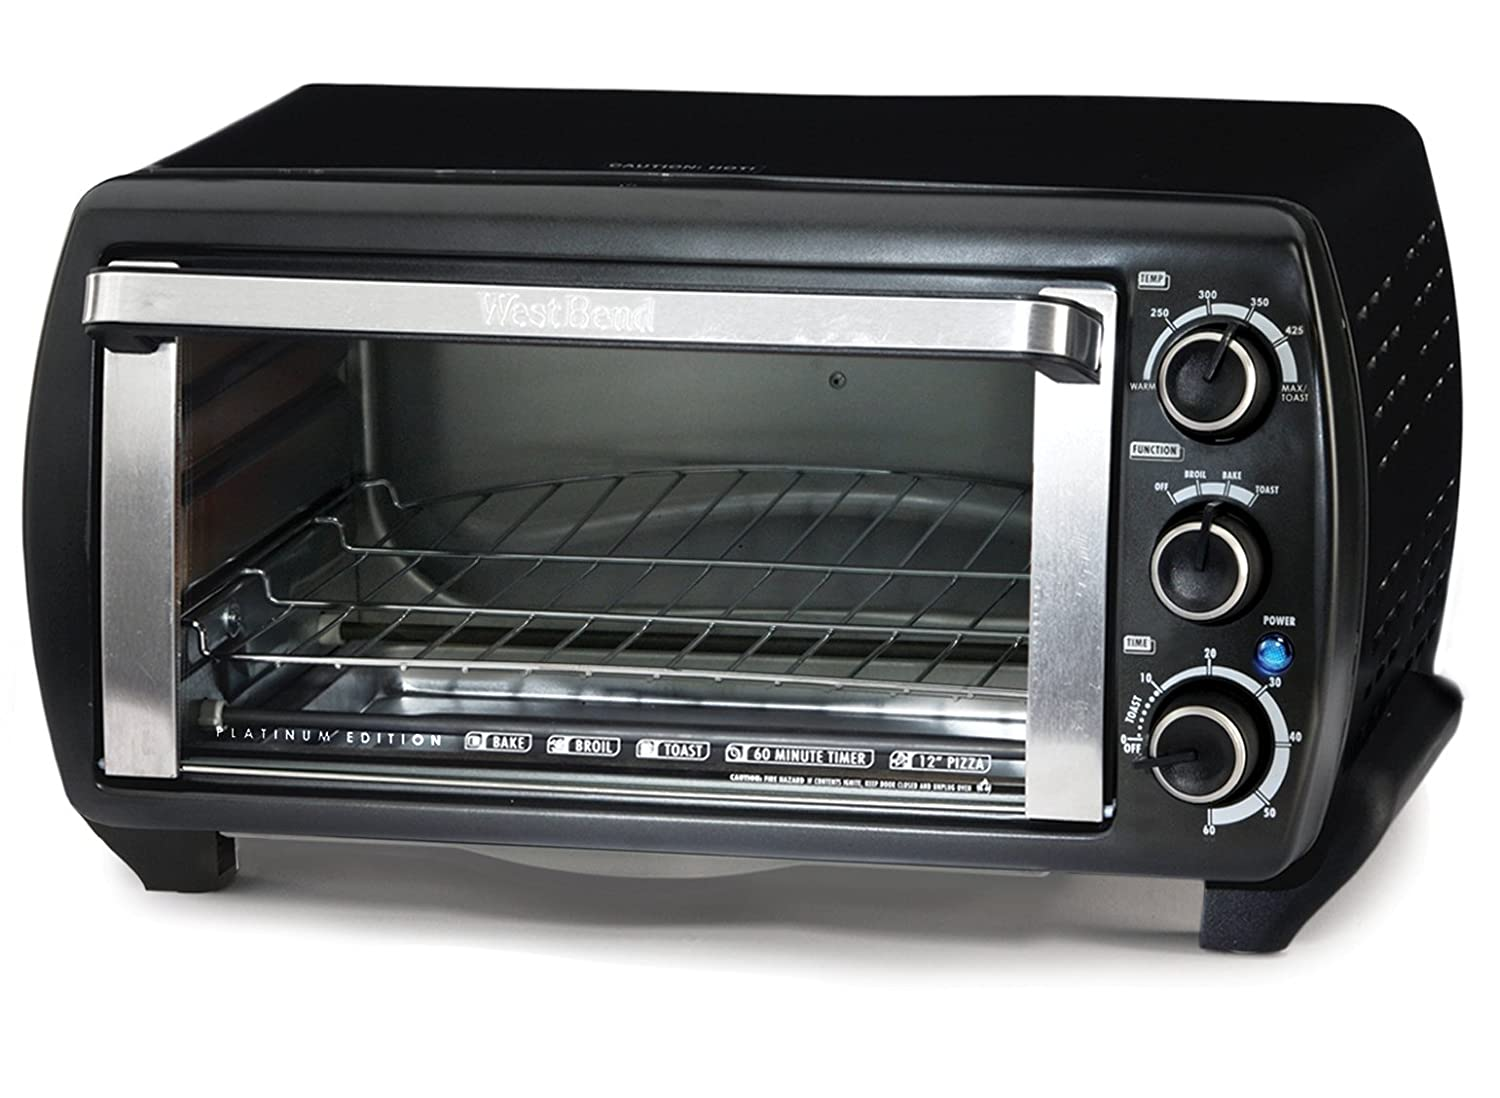 West Bend 74106 Large Countertop Oven (Discontinued by Manufacturer)